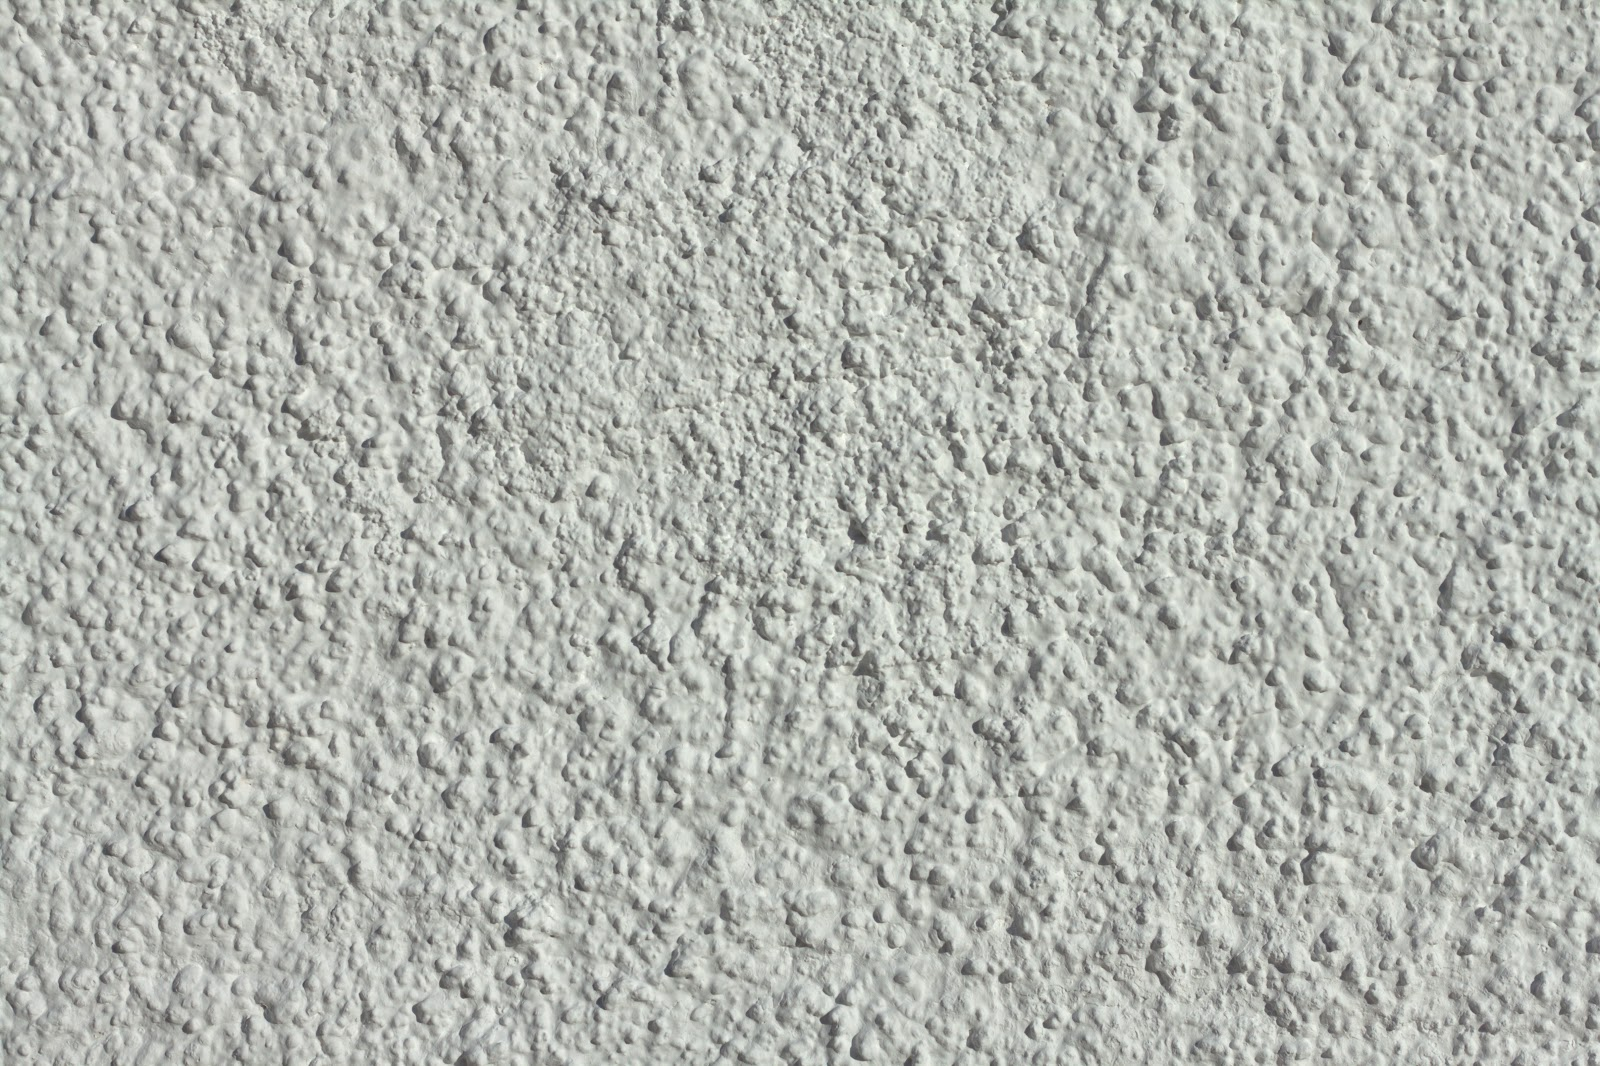 Stucco white wall plaster texture 4770x3178